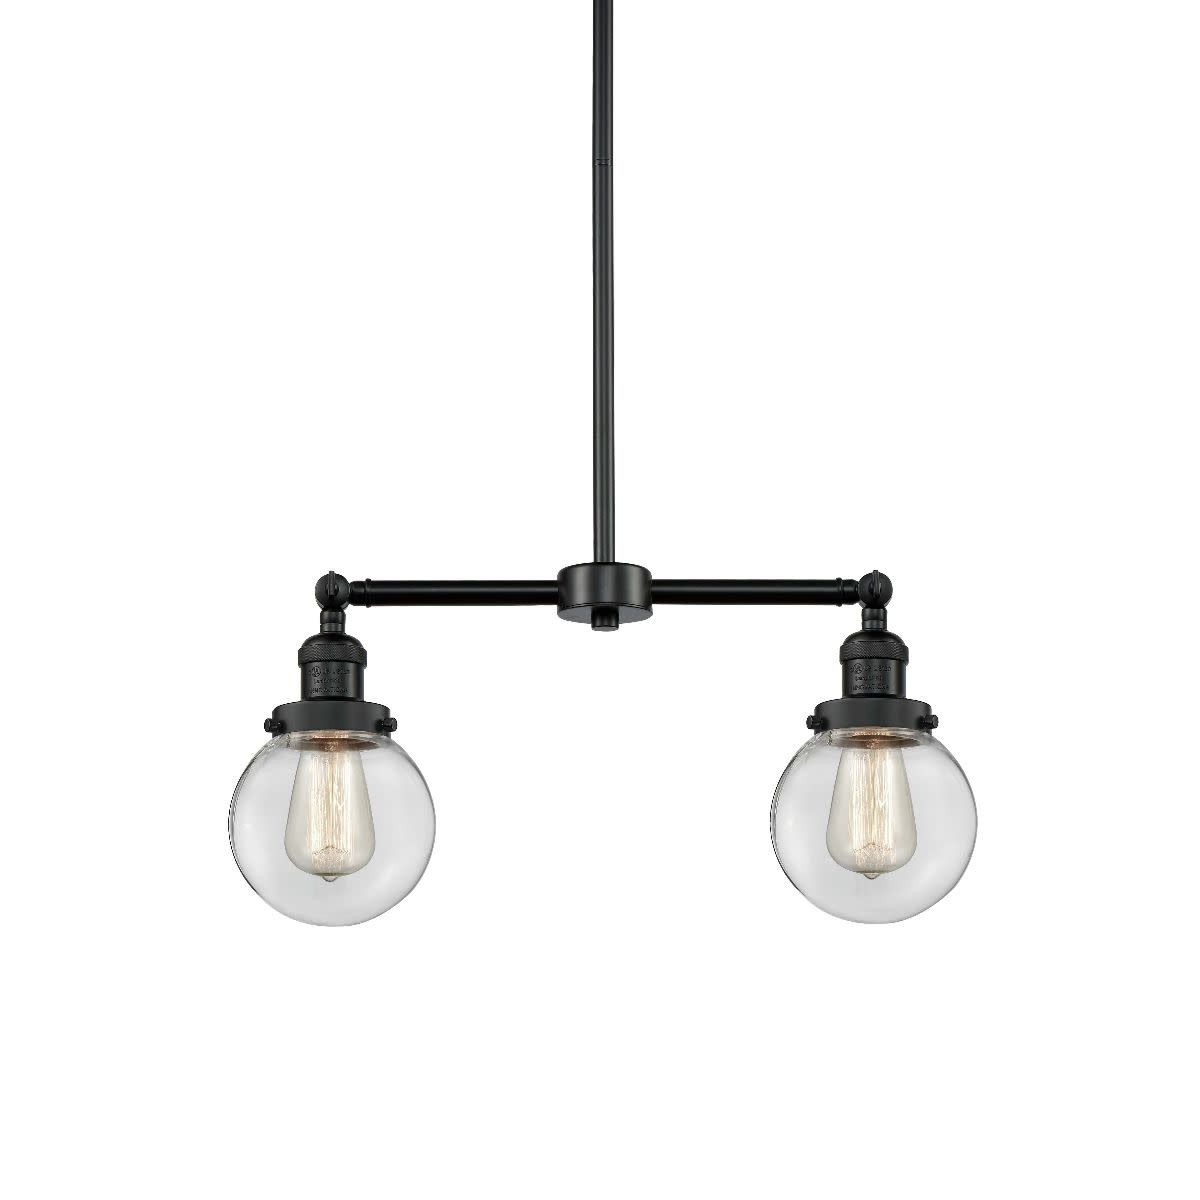 Details About Innovations Lighting 209 6 Beacon 2 Light 23 Wide Linear Chandelier